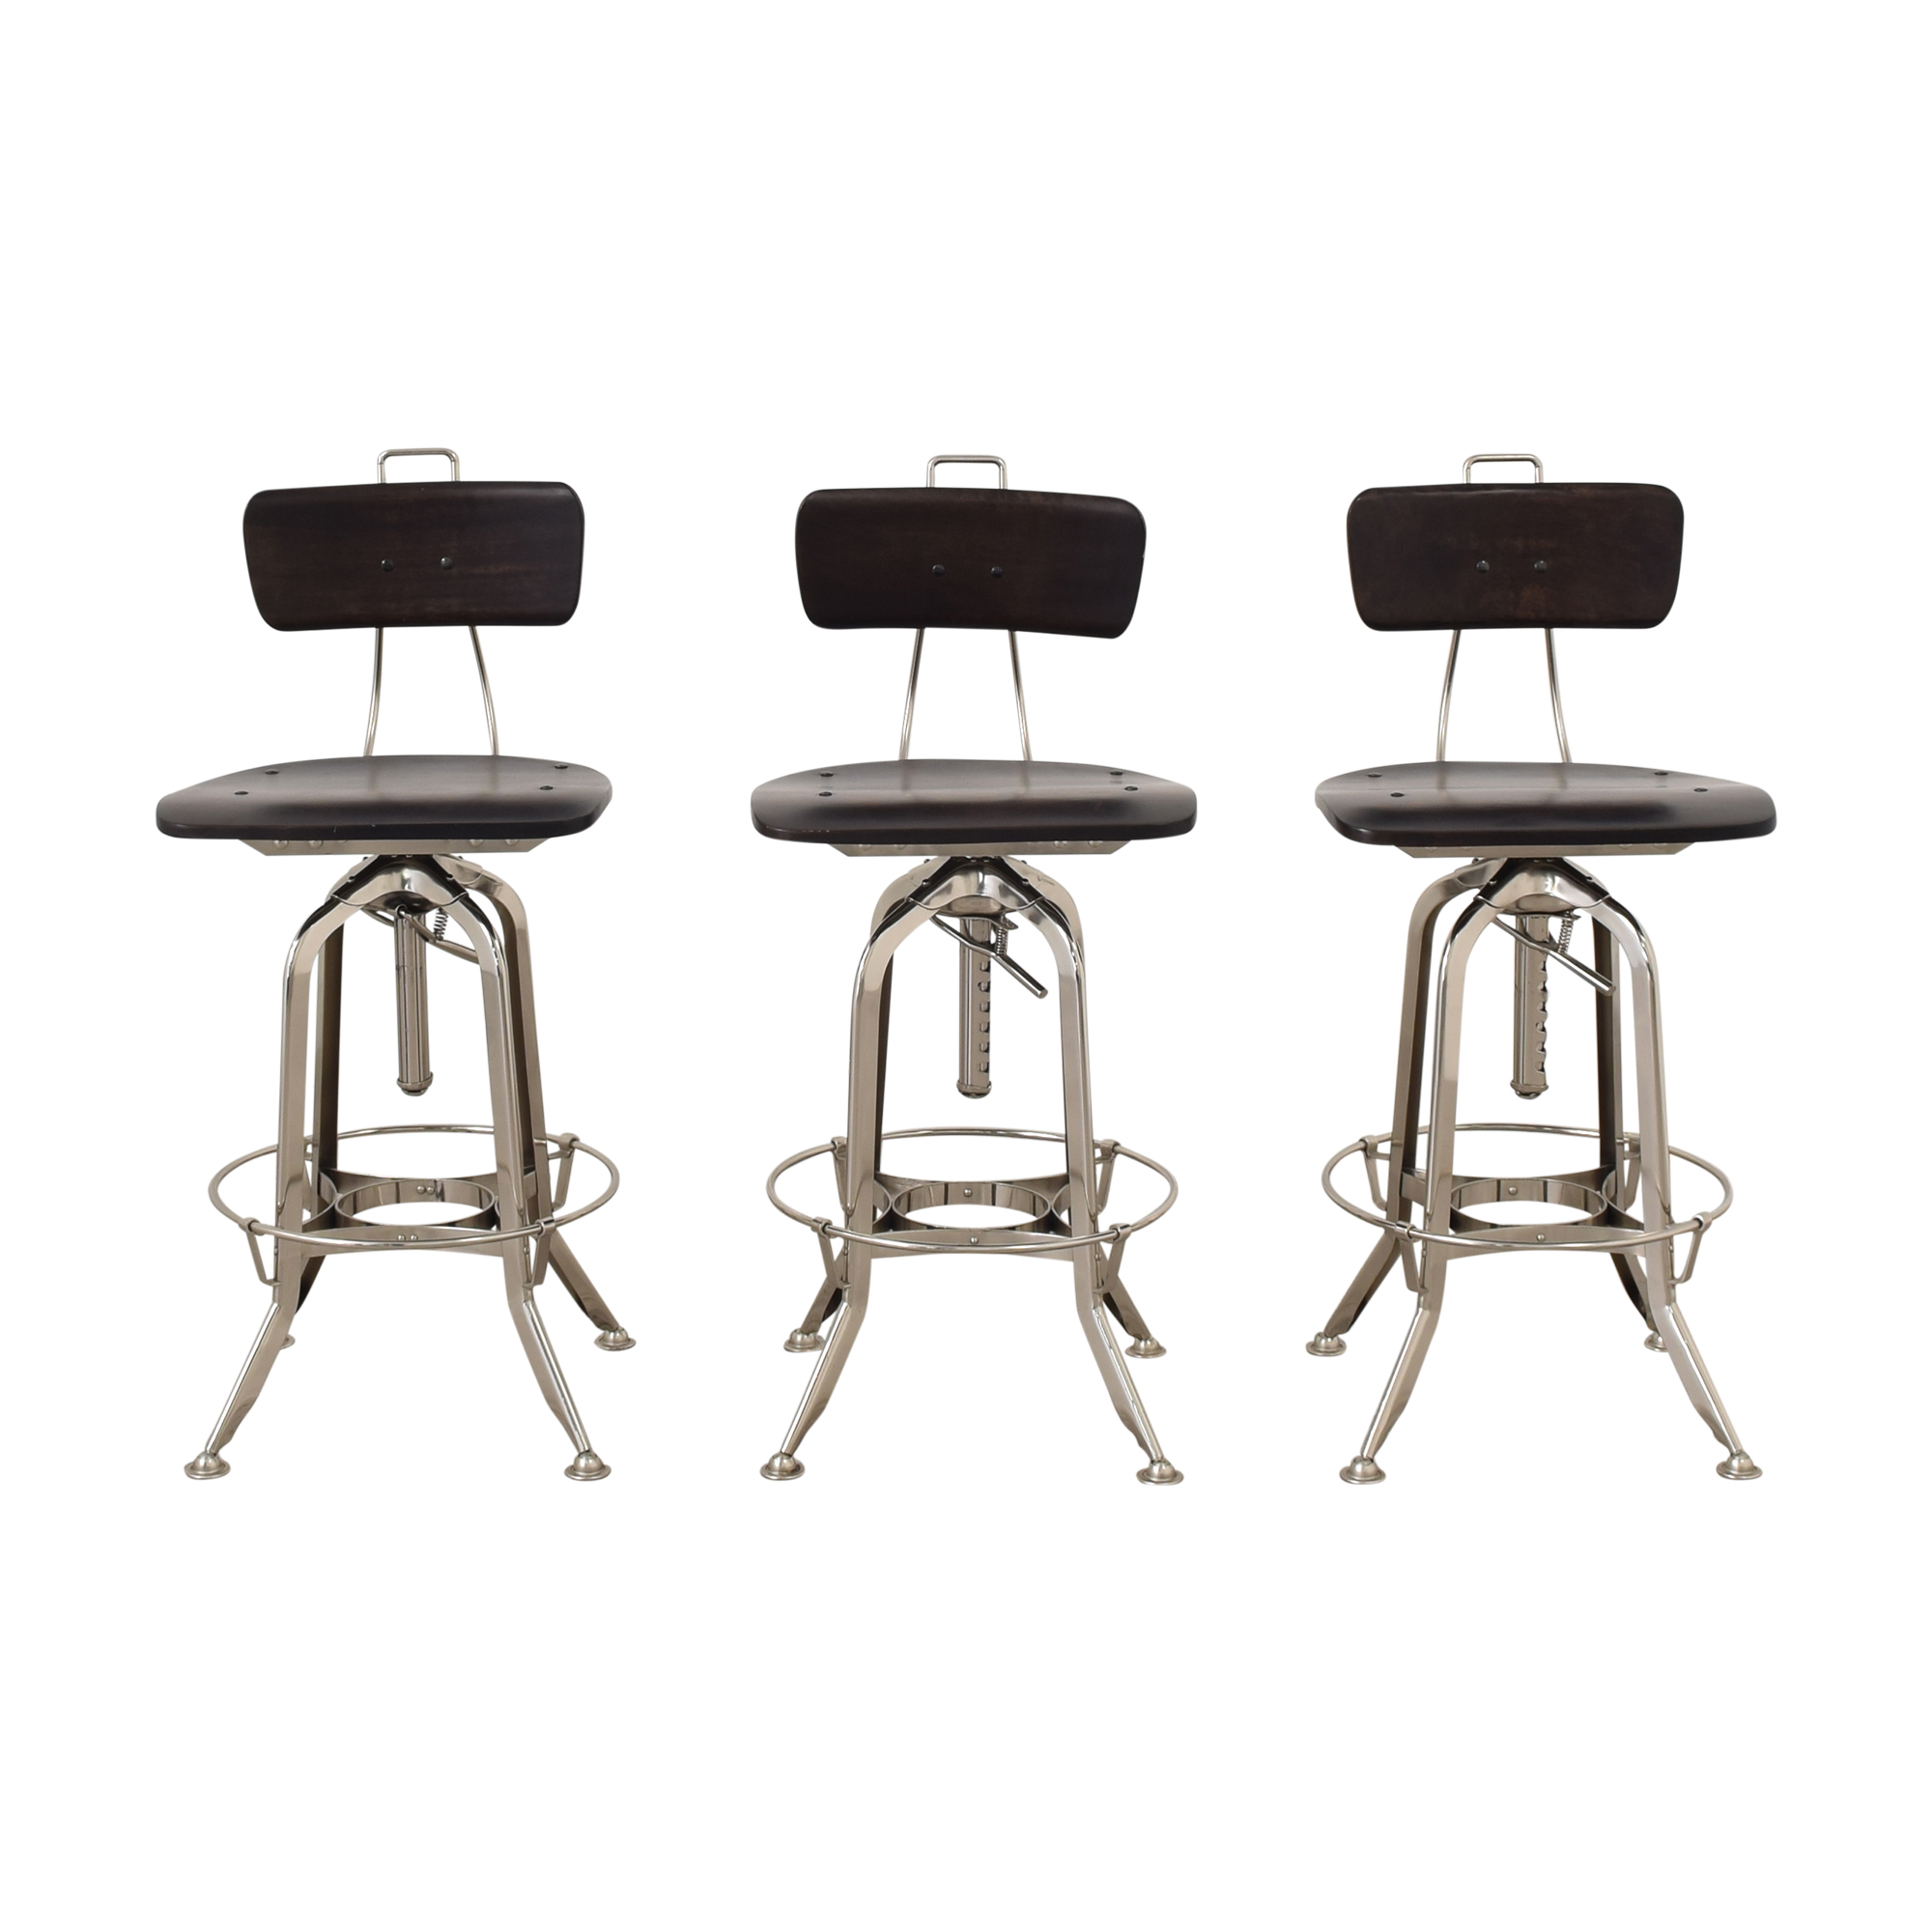 Restoration Hardware Restoration Hardware 1940s Vintage Toledo Bar Chairs dark brown & silver